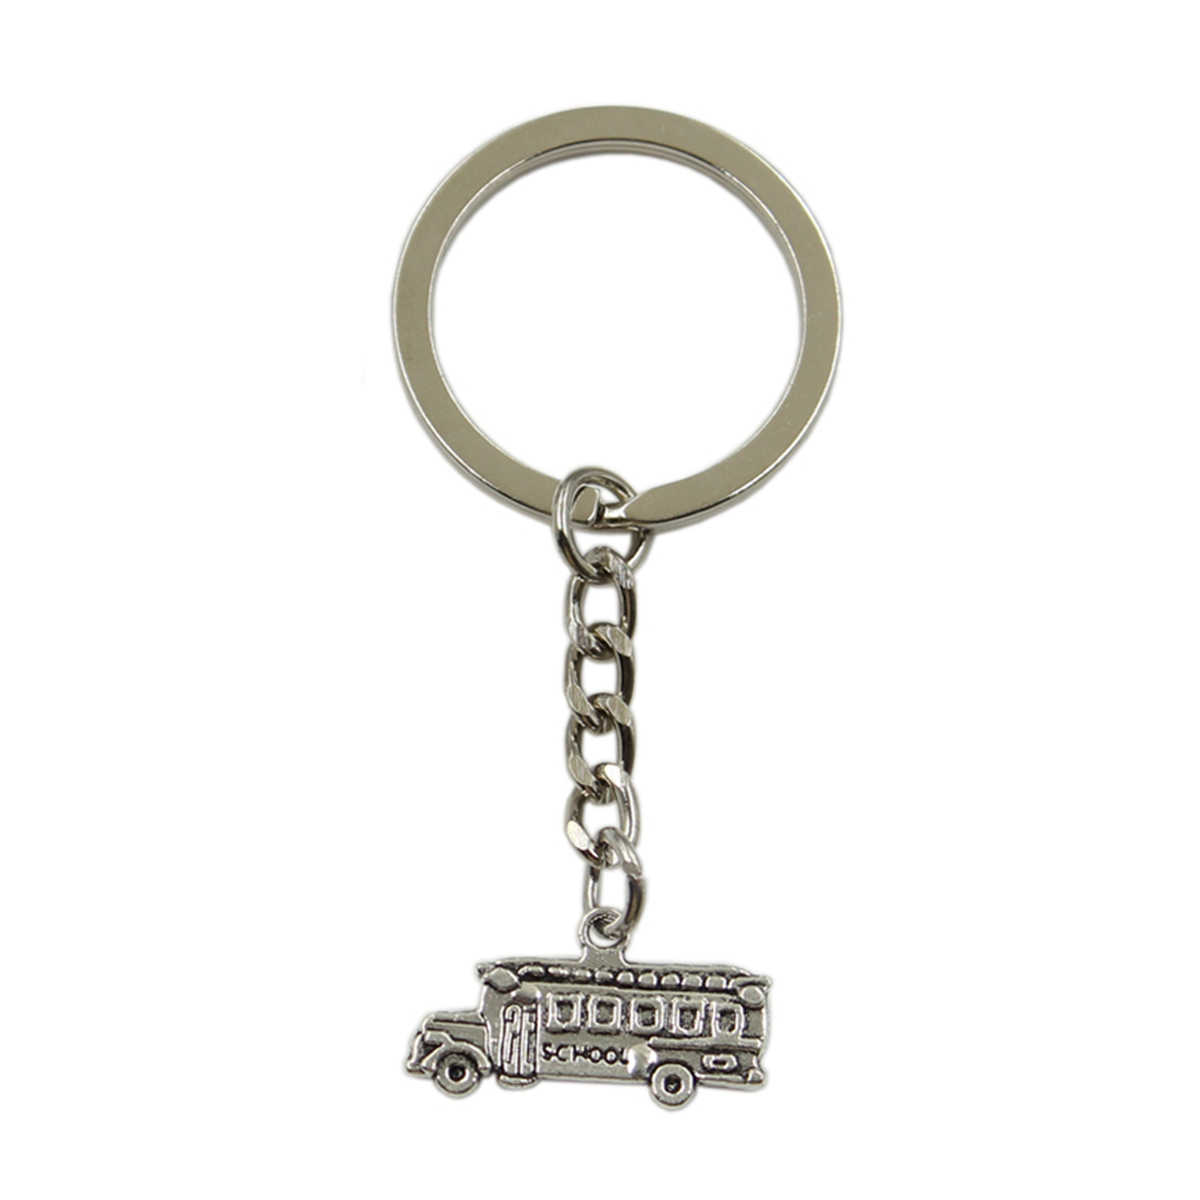 Factory Price school bus Pendant Key Ring Metal Chain Silver Men Car Gift Souvenirs Keychain Dropshipping